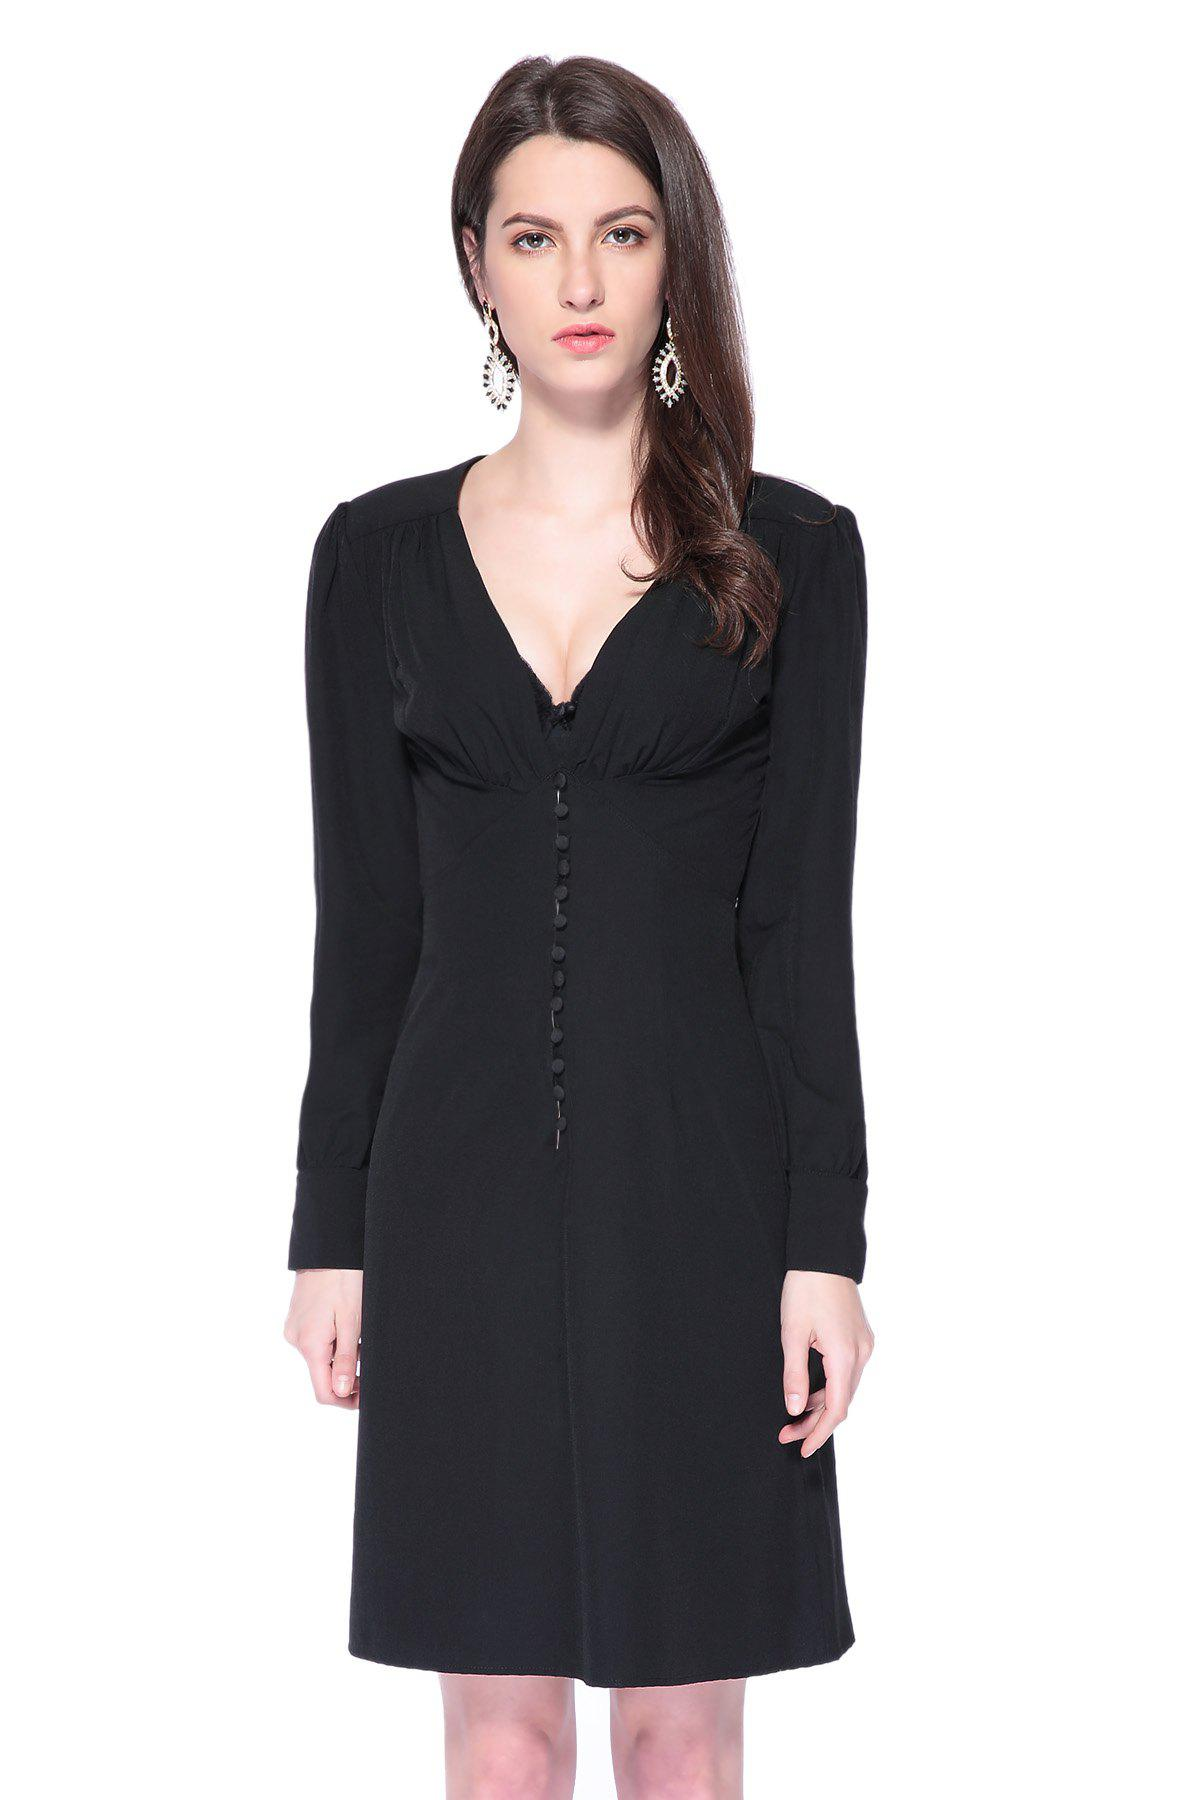 Fashionable Plunging Neck Long Sleeve Black Single-Breasted Women's Dress - BLACK M